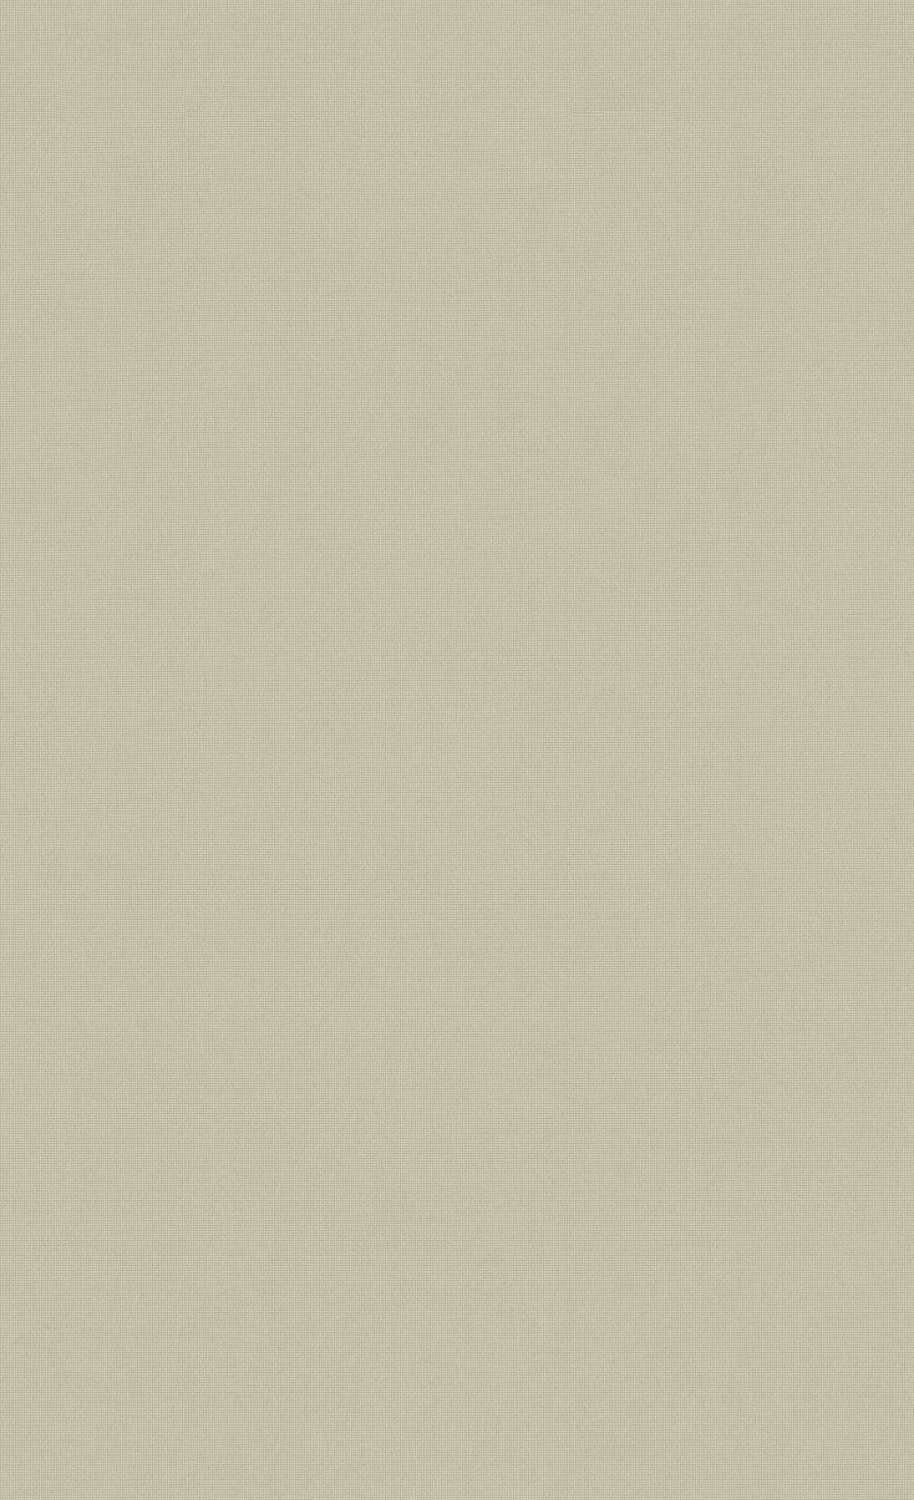 Minimalist Smoke Gray Wallpaper C7289 |  Commercial and Hospitality